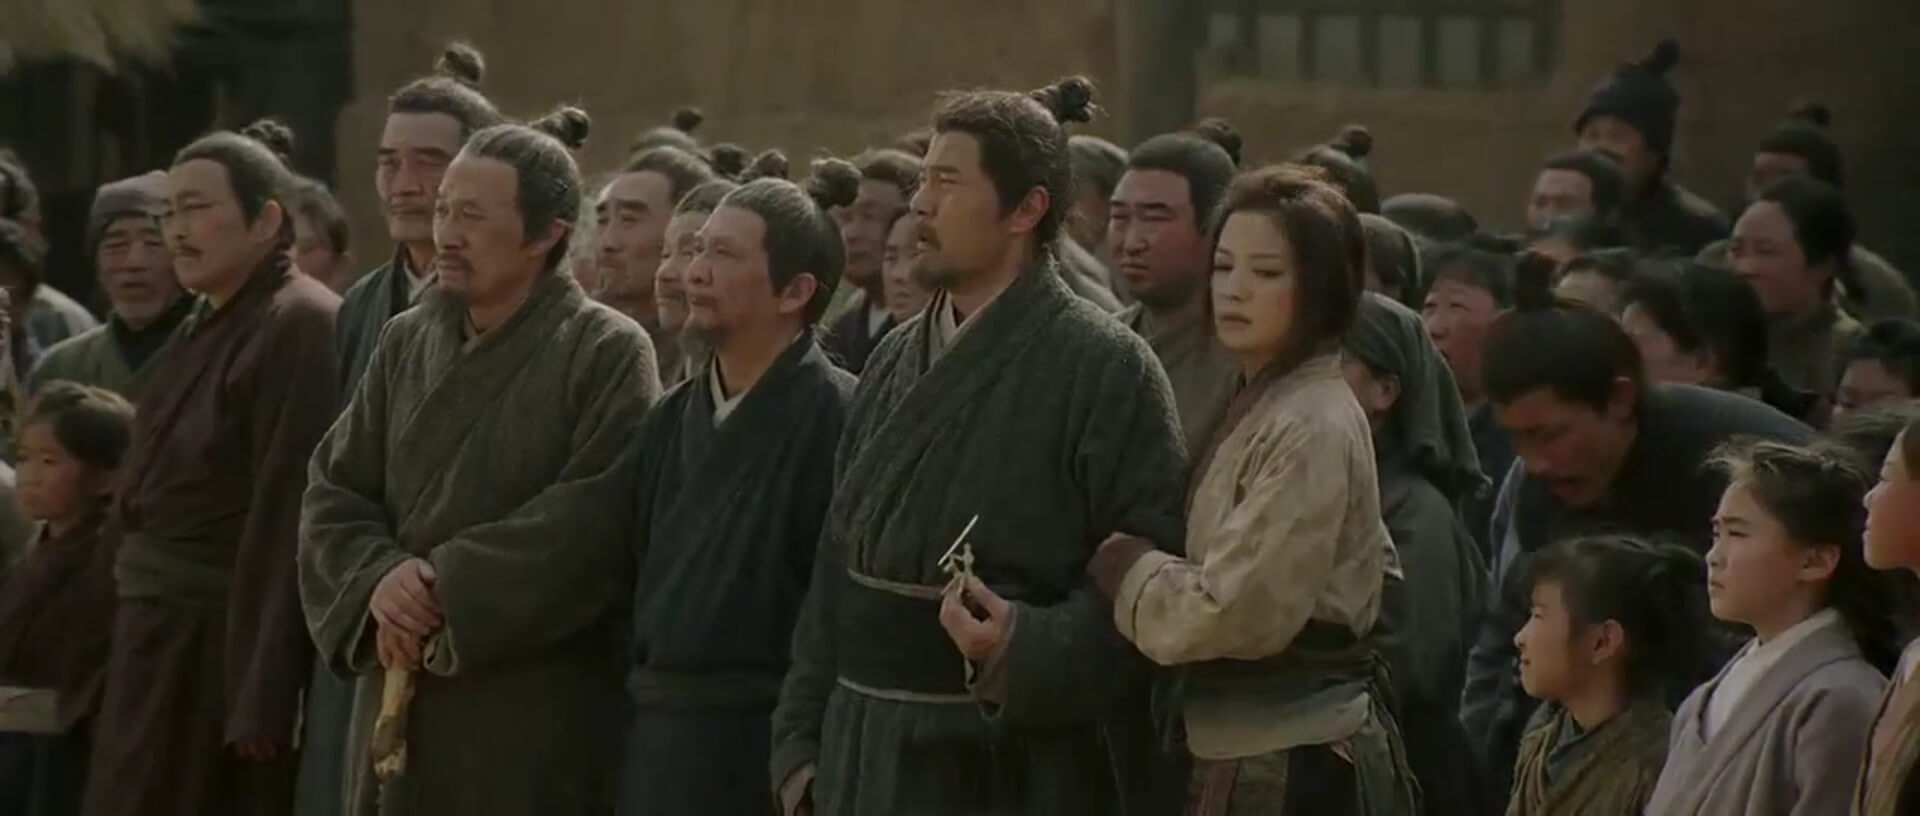 Mulan stands next to her father, Hua Hu, as he receives his conscription orders.